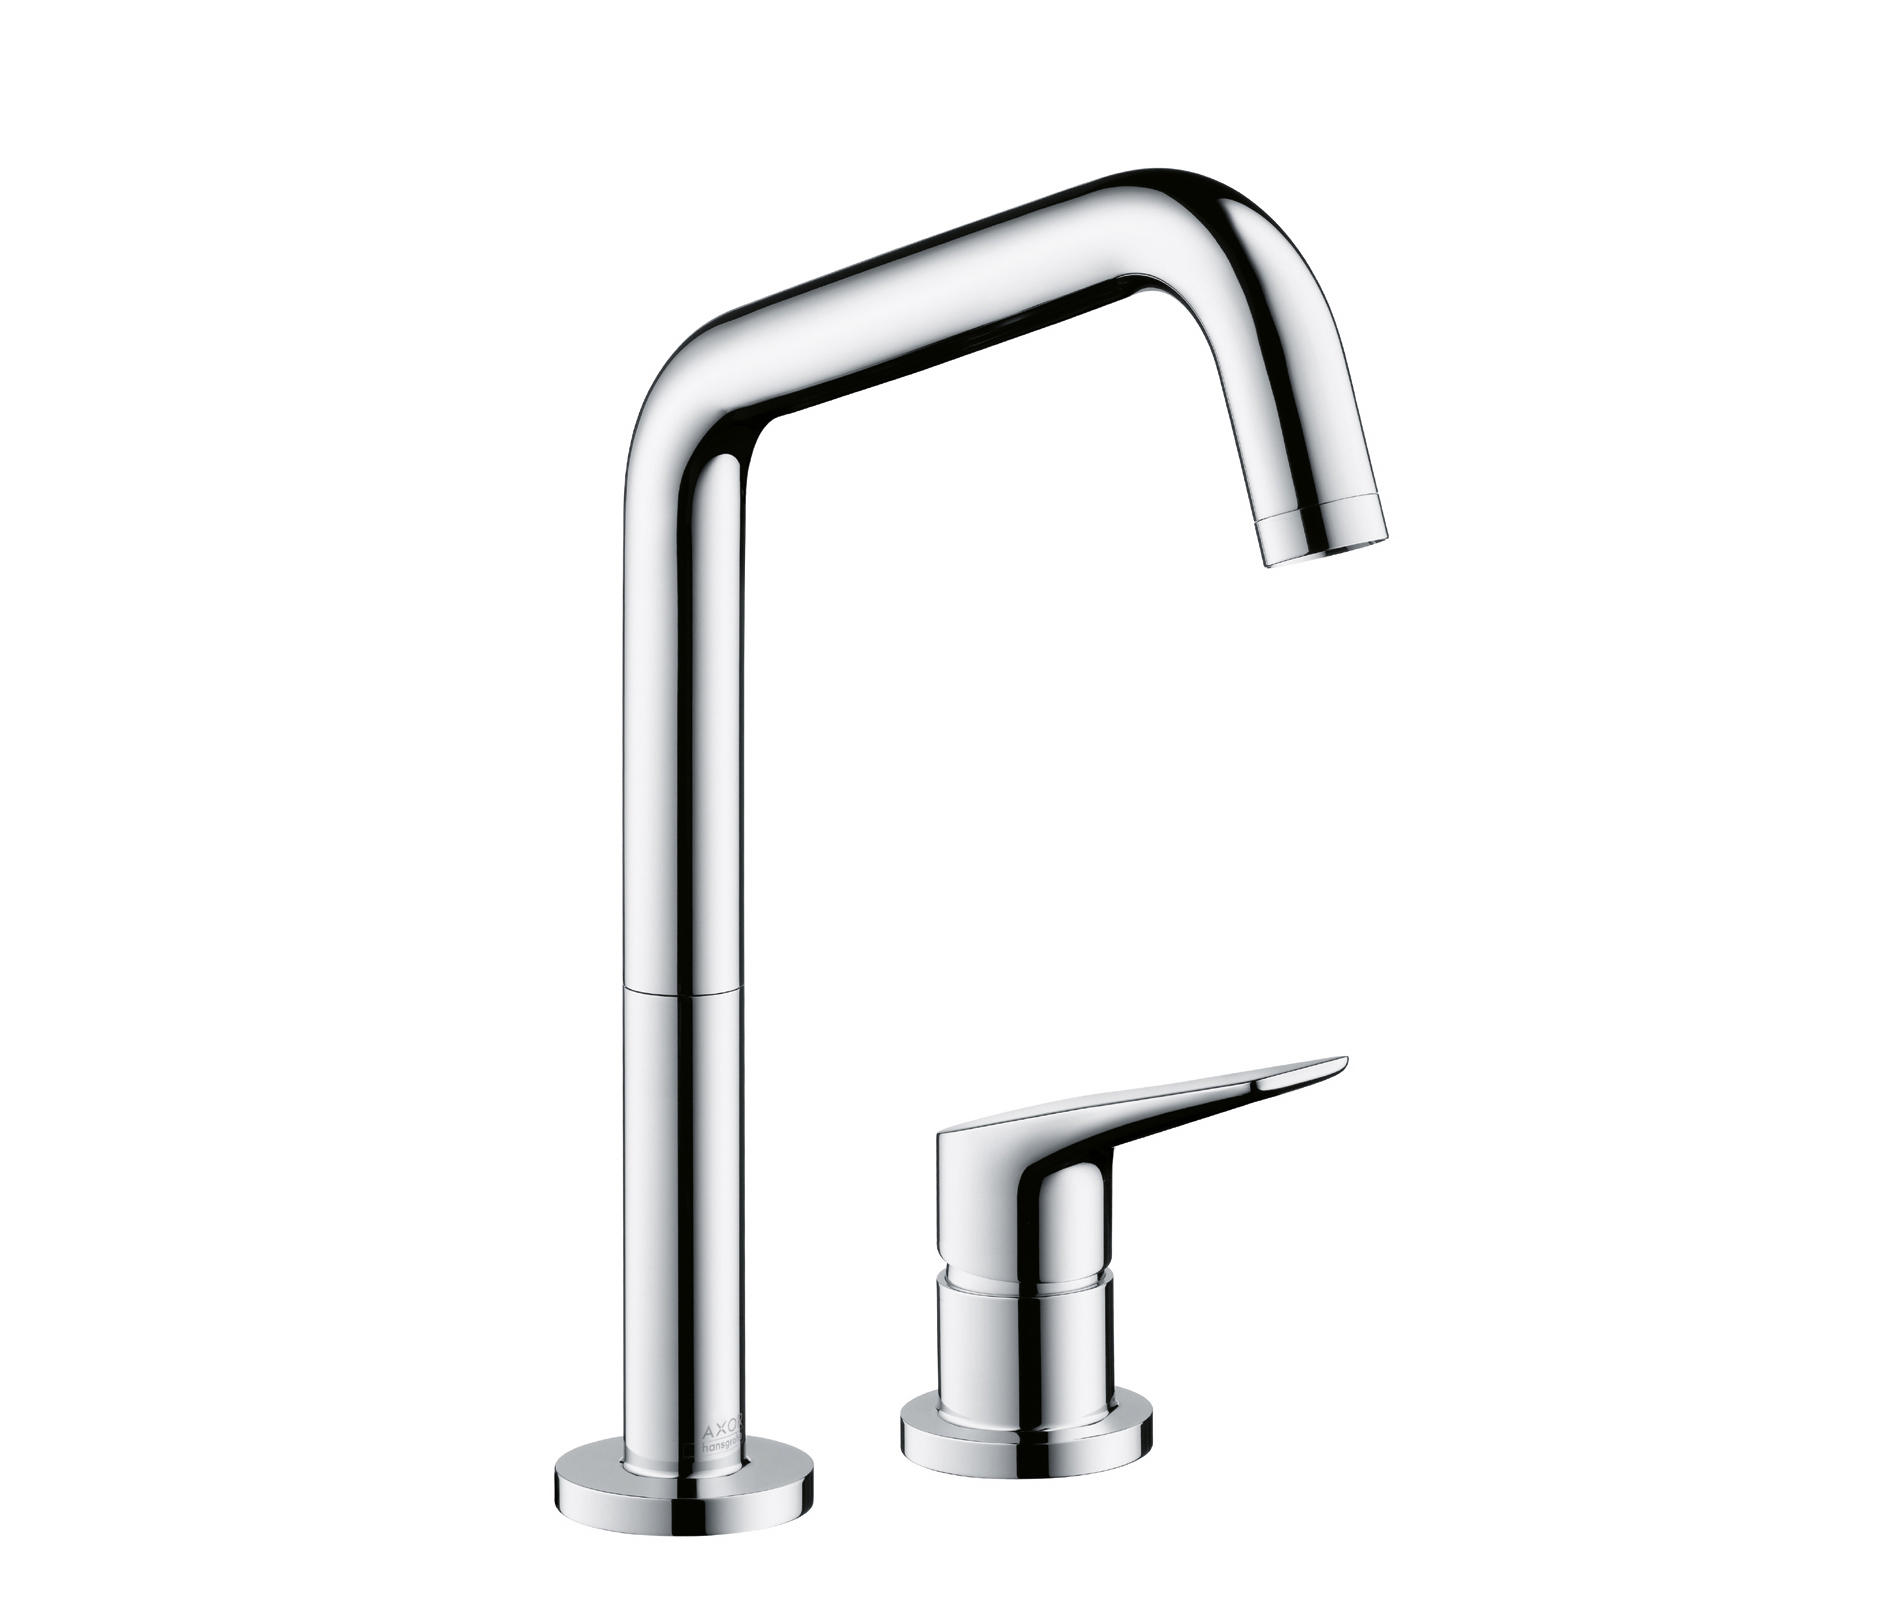 Axor Citterio M 2 Hole Kitchen Mixer Dn15 Kitchen Taps From Axor